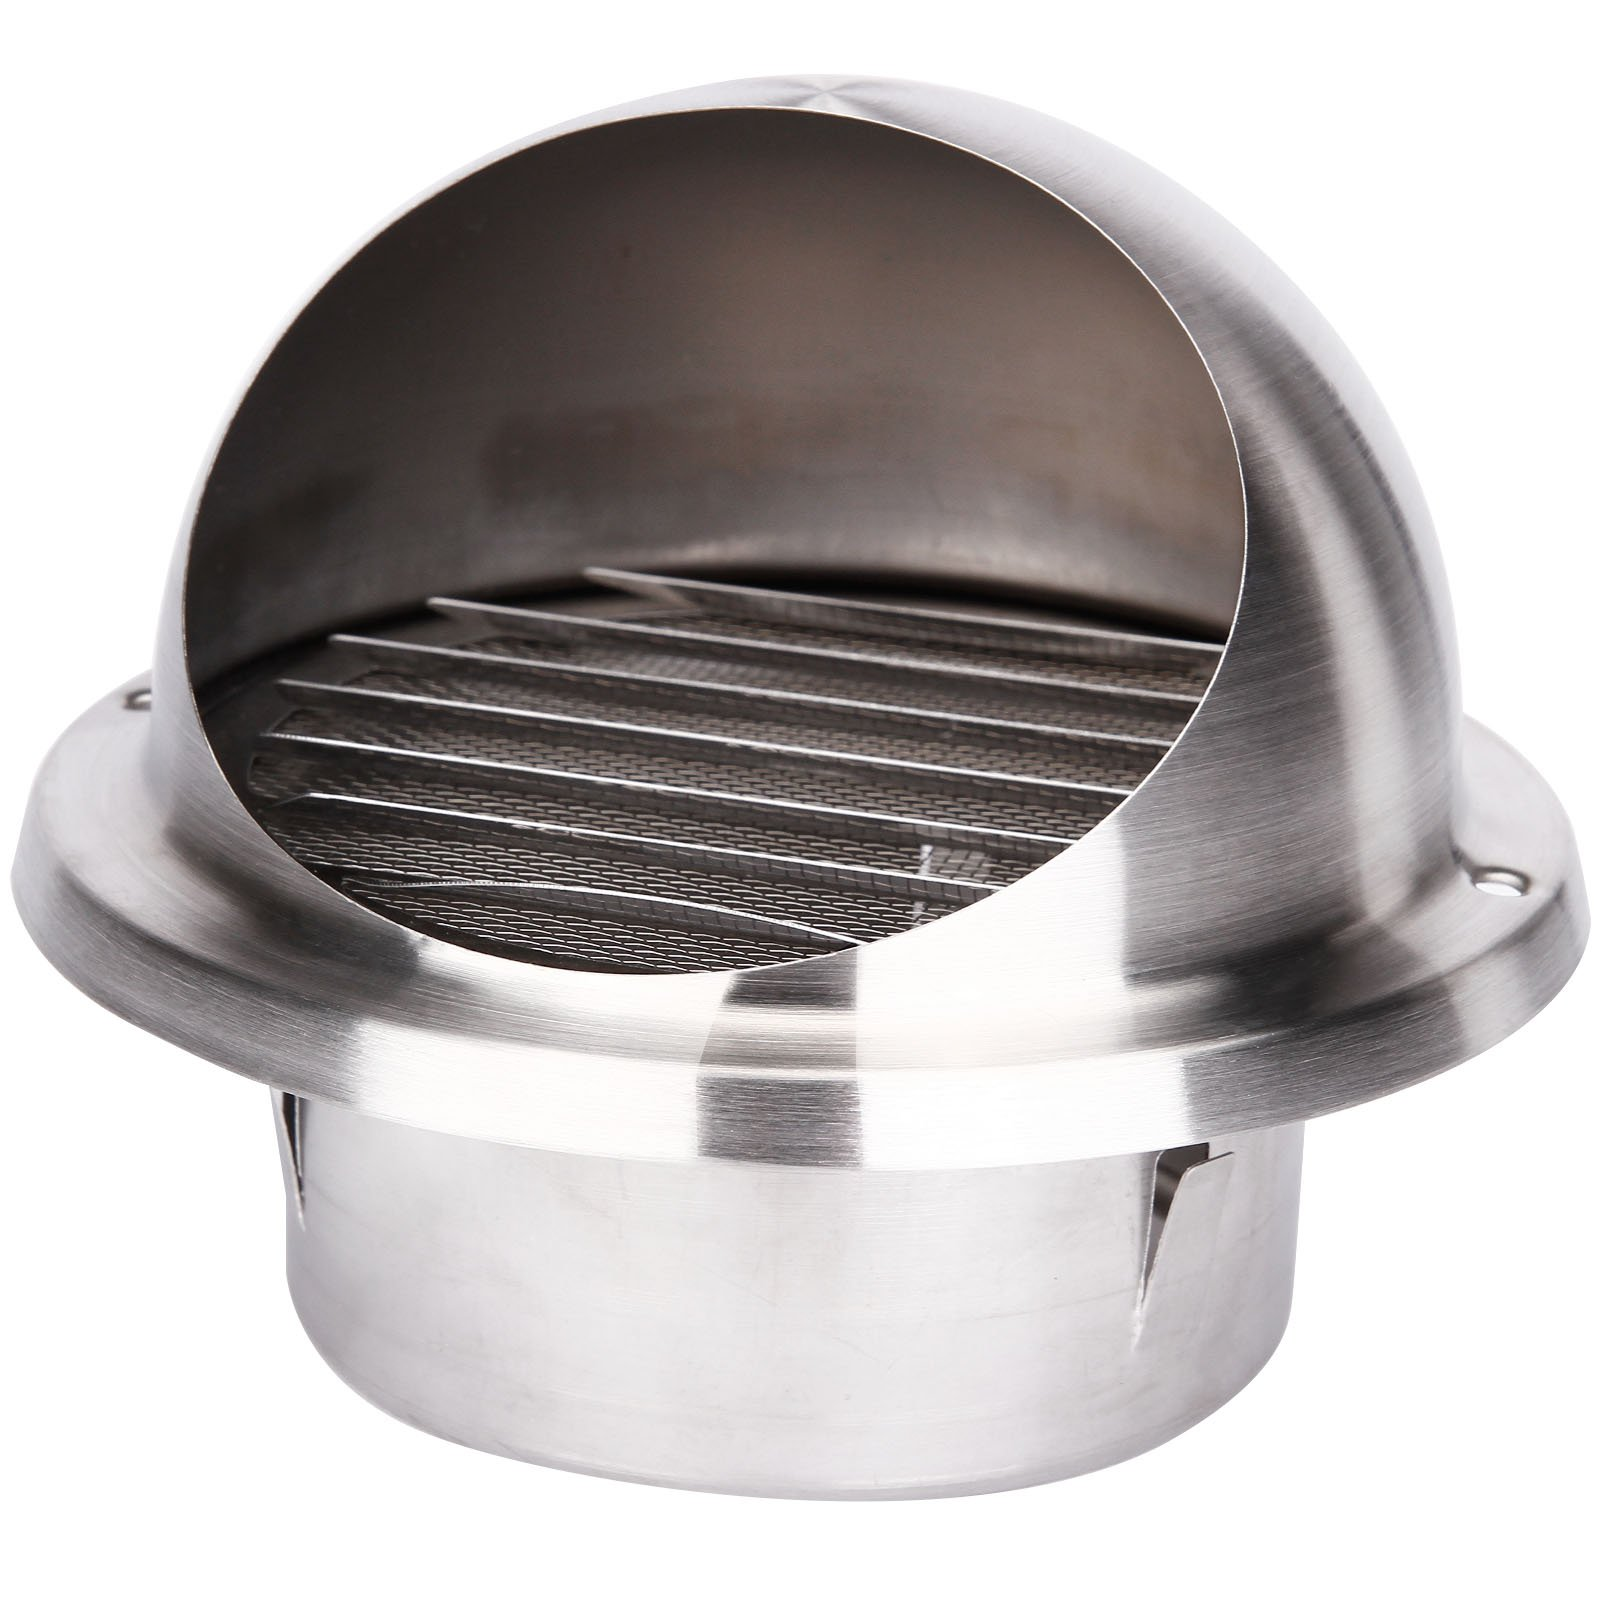 Surepromise 304 Stainless Steel Wall Air Vent Metal Cover Outlet Exhaust Grille 150MM 6inches Ball